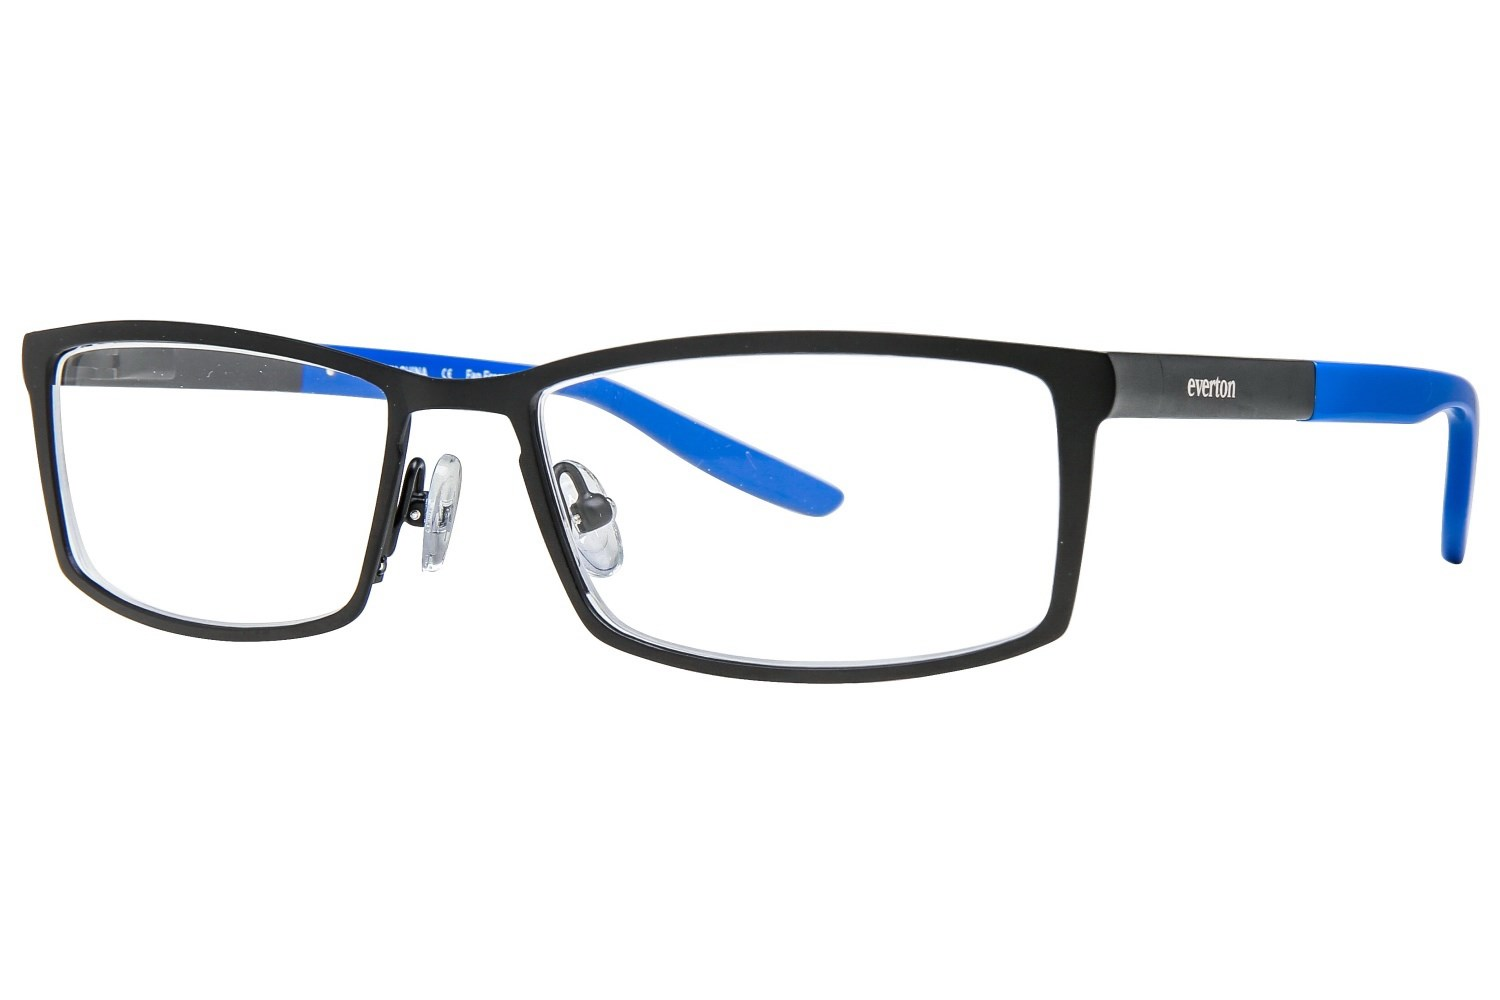 Eyeglass Frame Lookup : Amazon Eyeglass Frames - Search